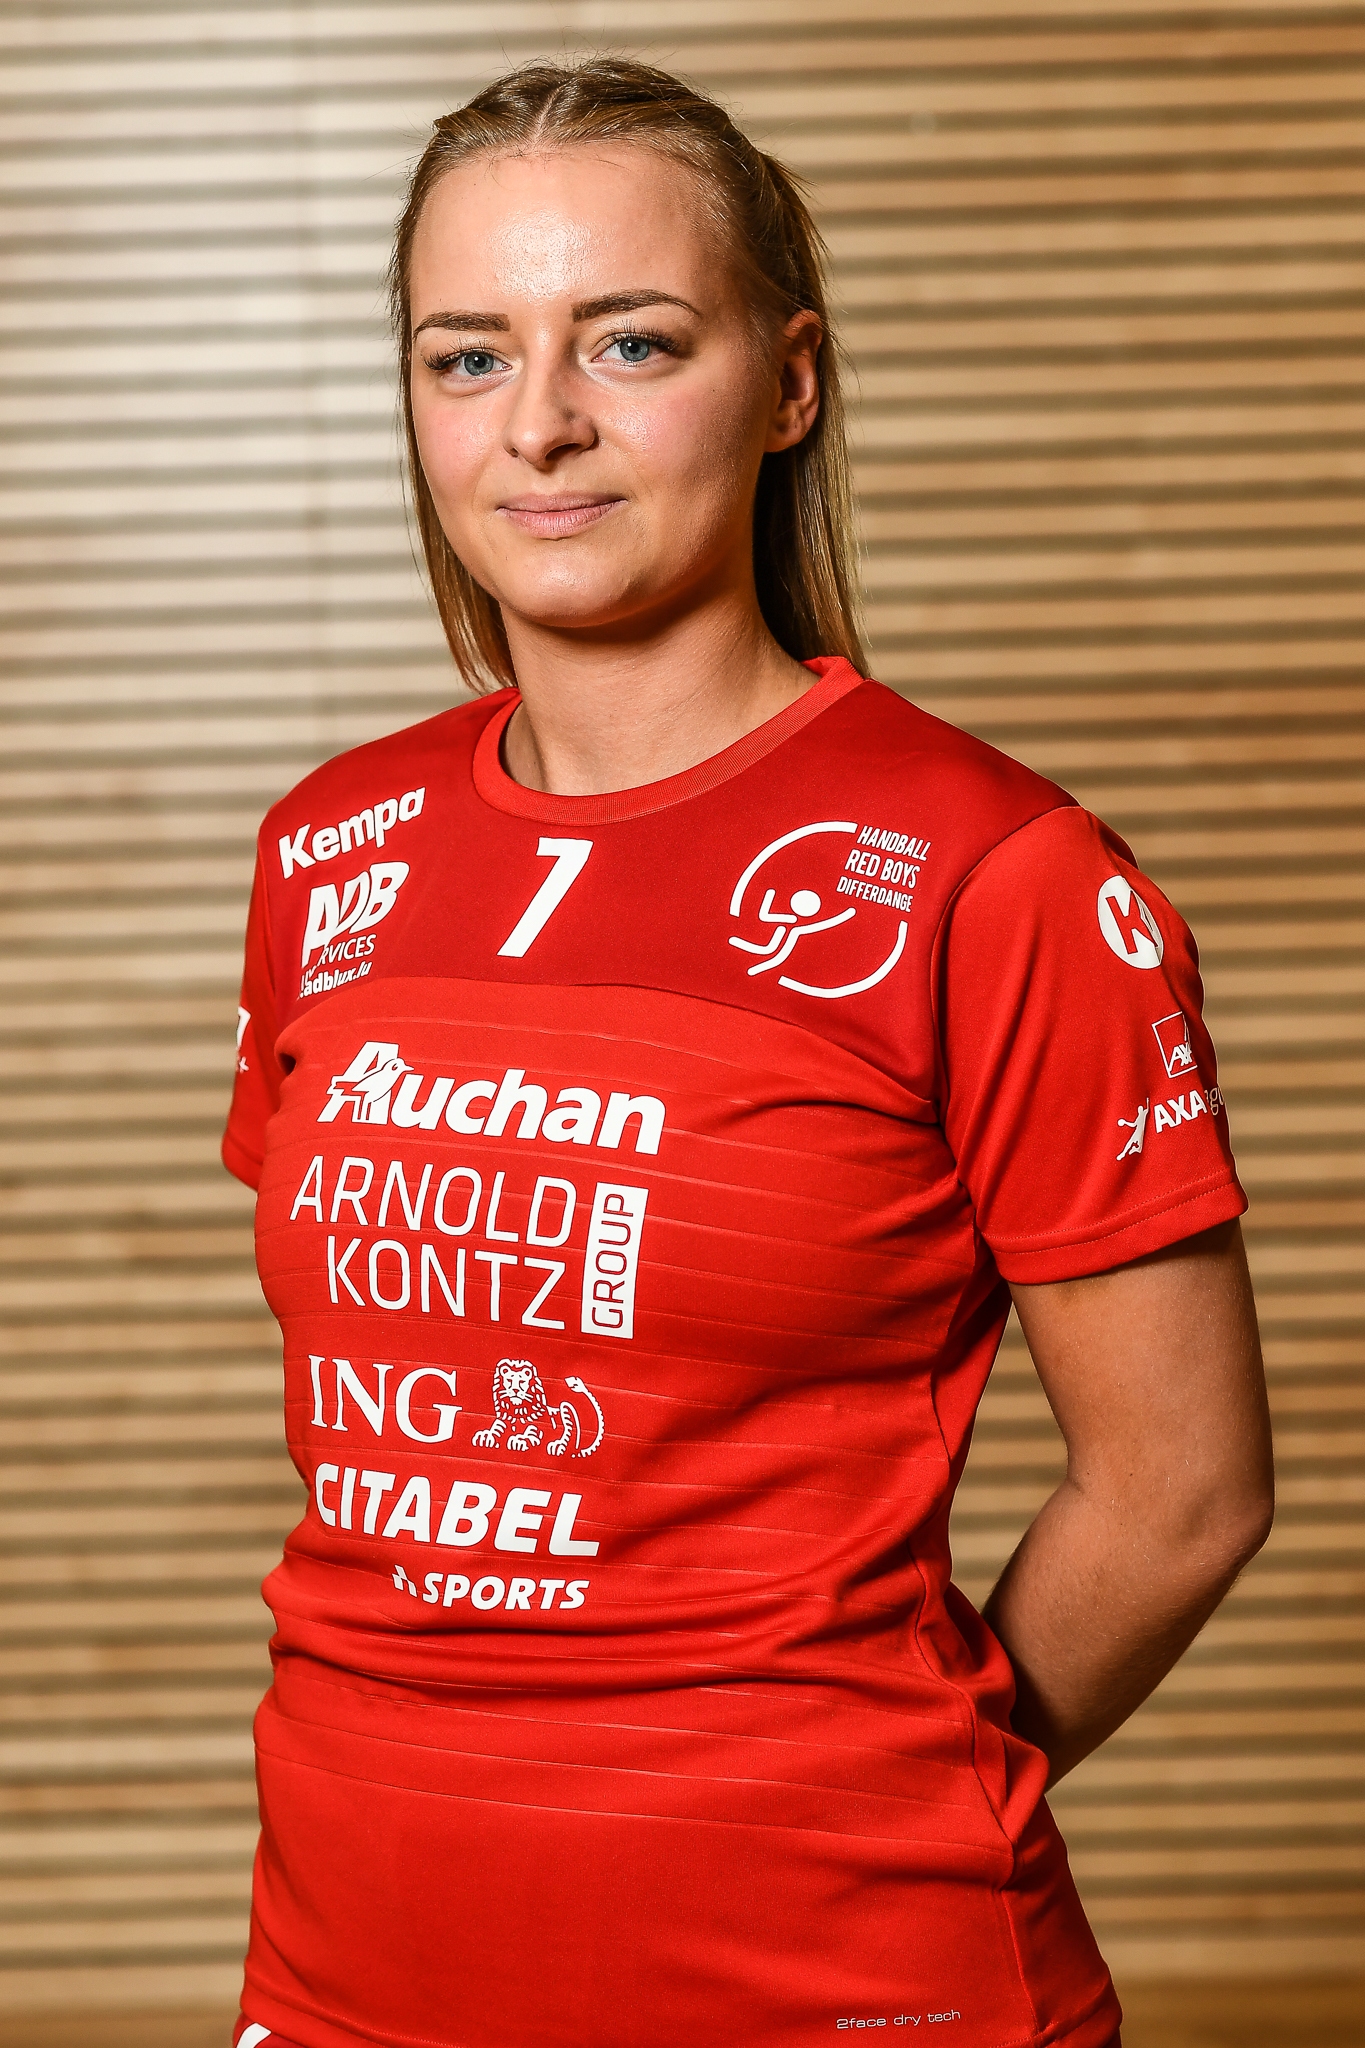 https://handball.lu/redboys/wp-content/uploads/2020/09/VAL_5887-204.jpg